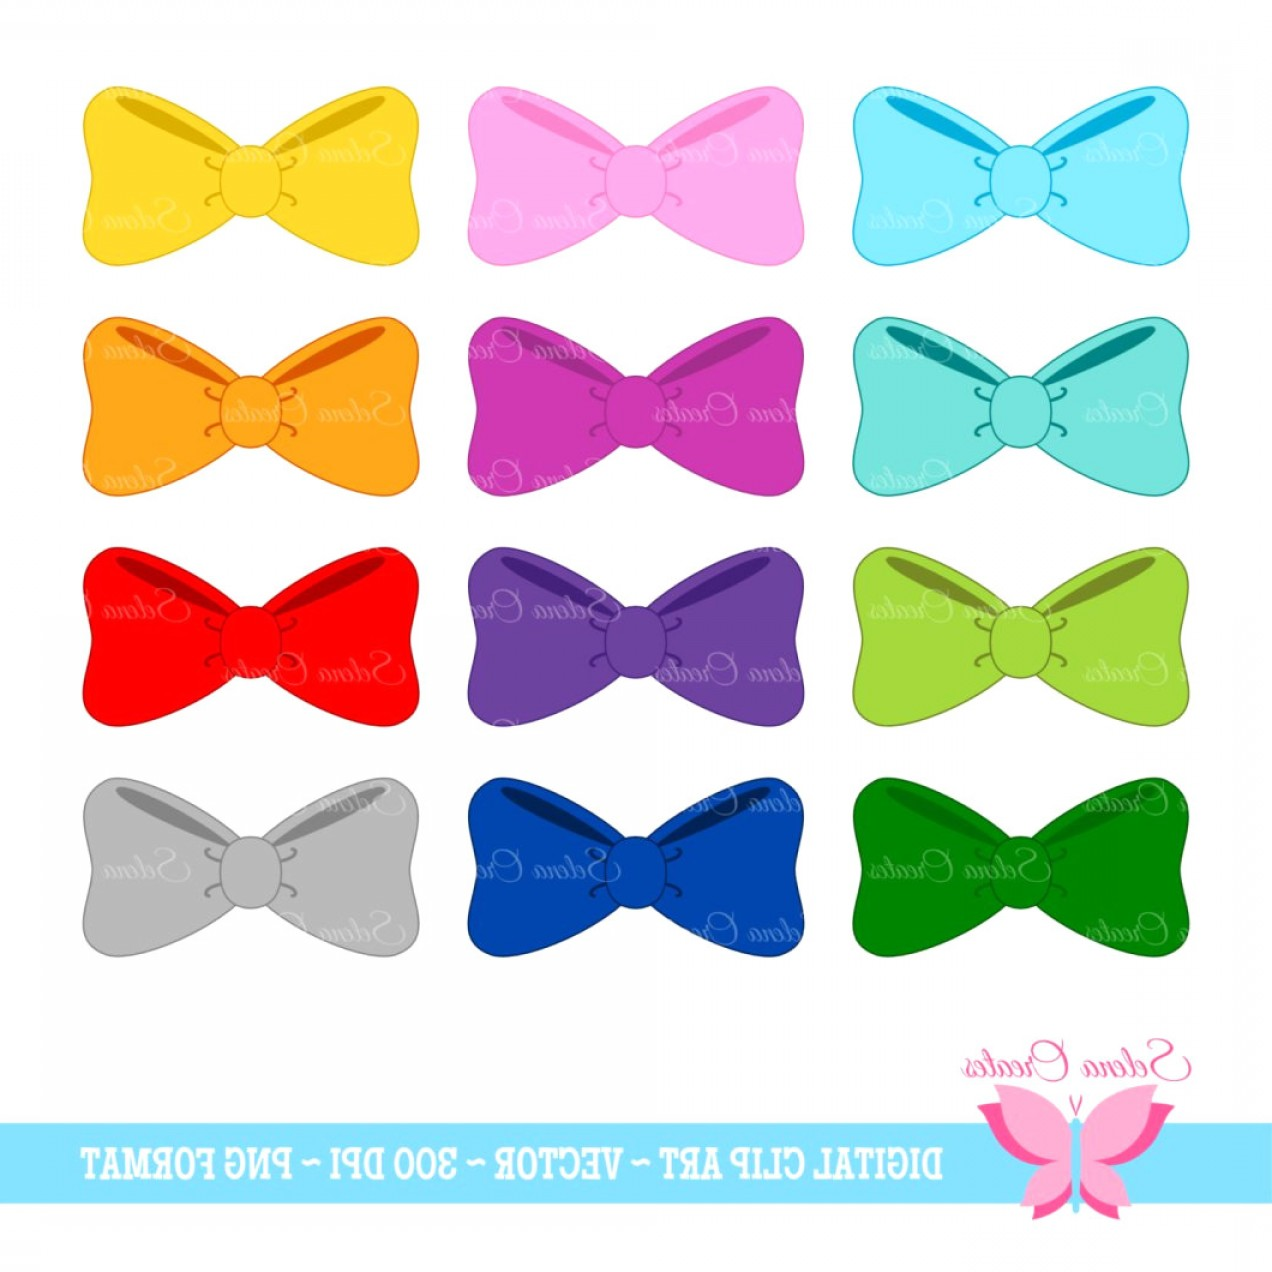 Hair Bow Clip Art Vector: Bow Clipart Image Of Hair Clip Art White Dotted Vector Free X